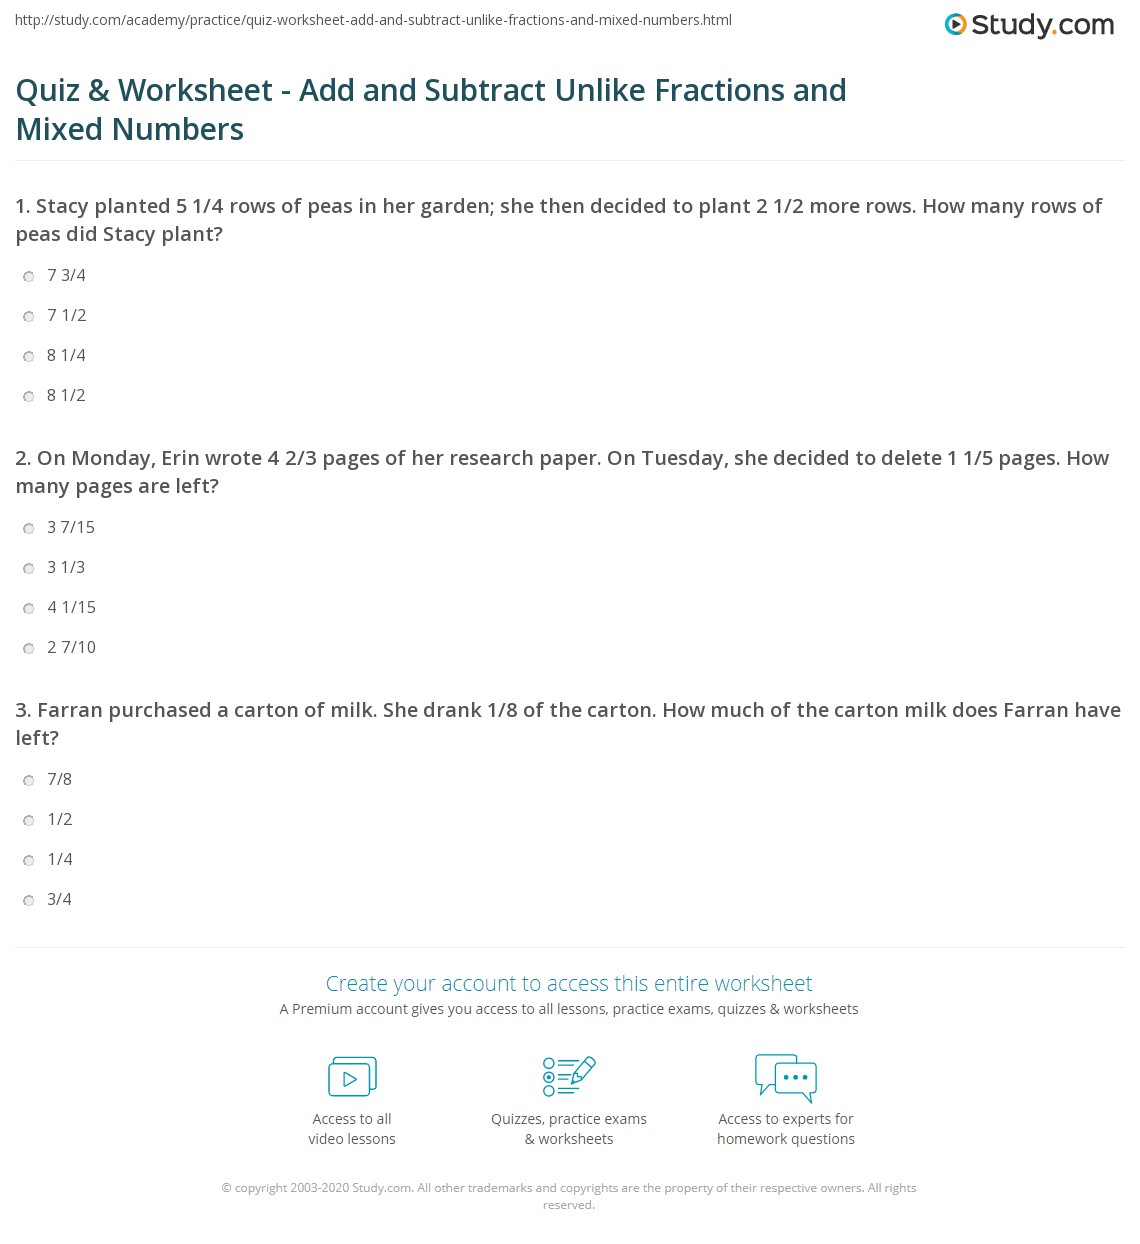 Quiz Worksheet Add and Subtract Unlike Fractions and Mixed – Adding and Subtracting Unlike Denominators Worksheet